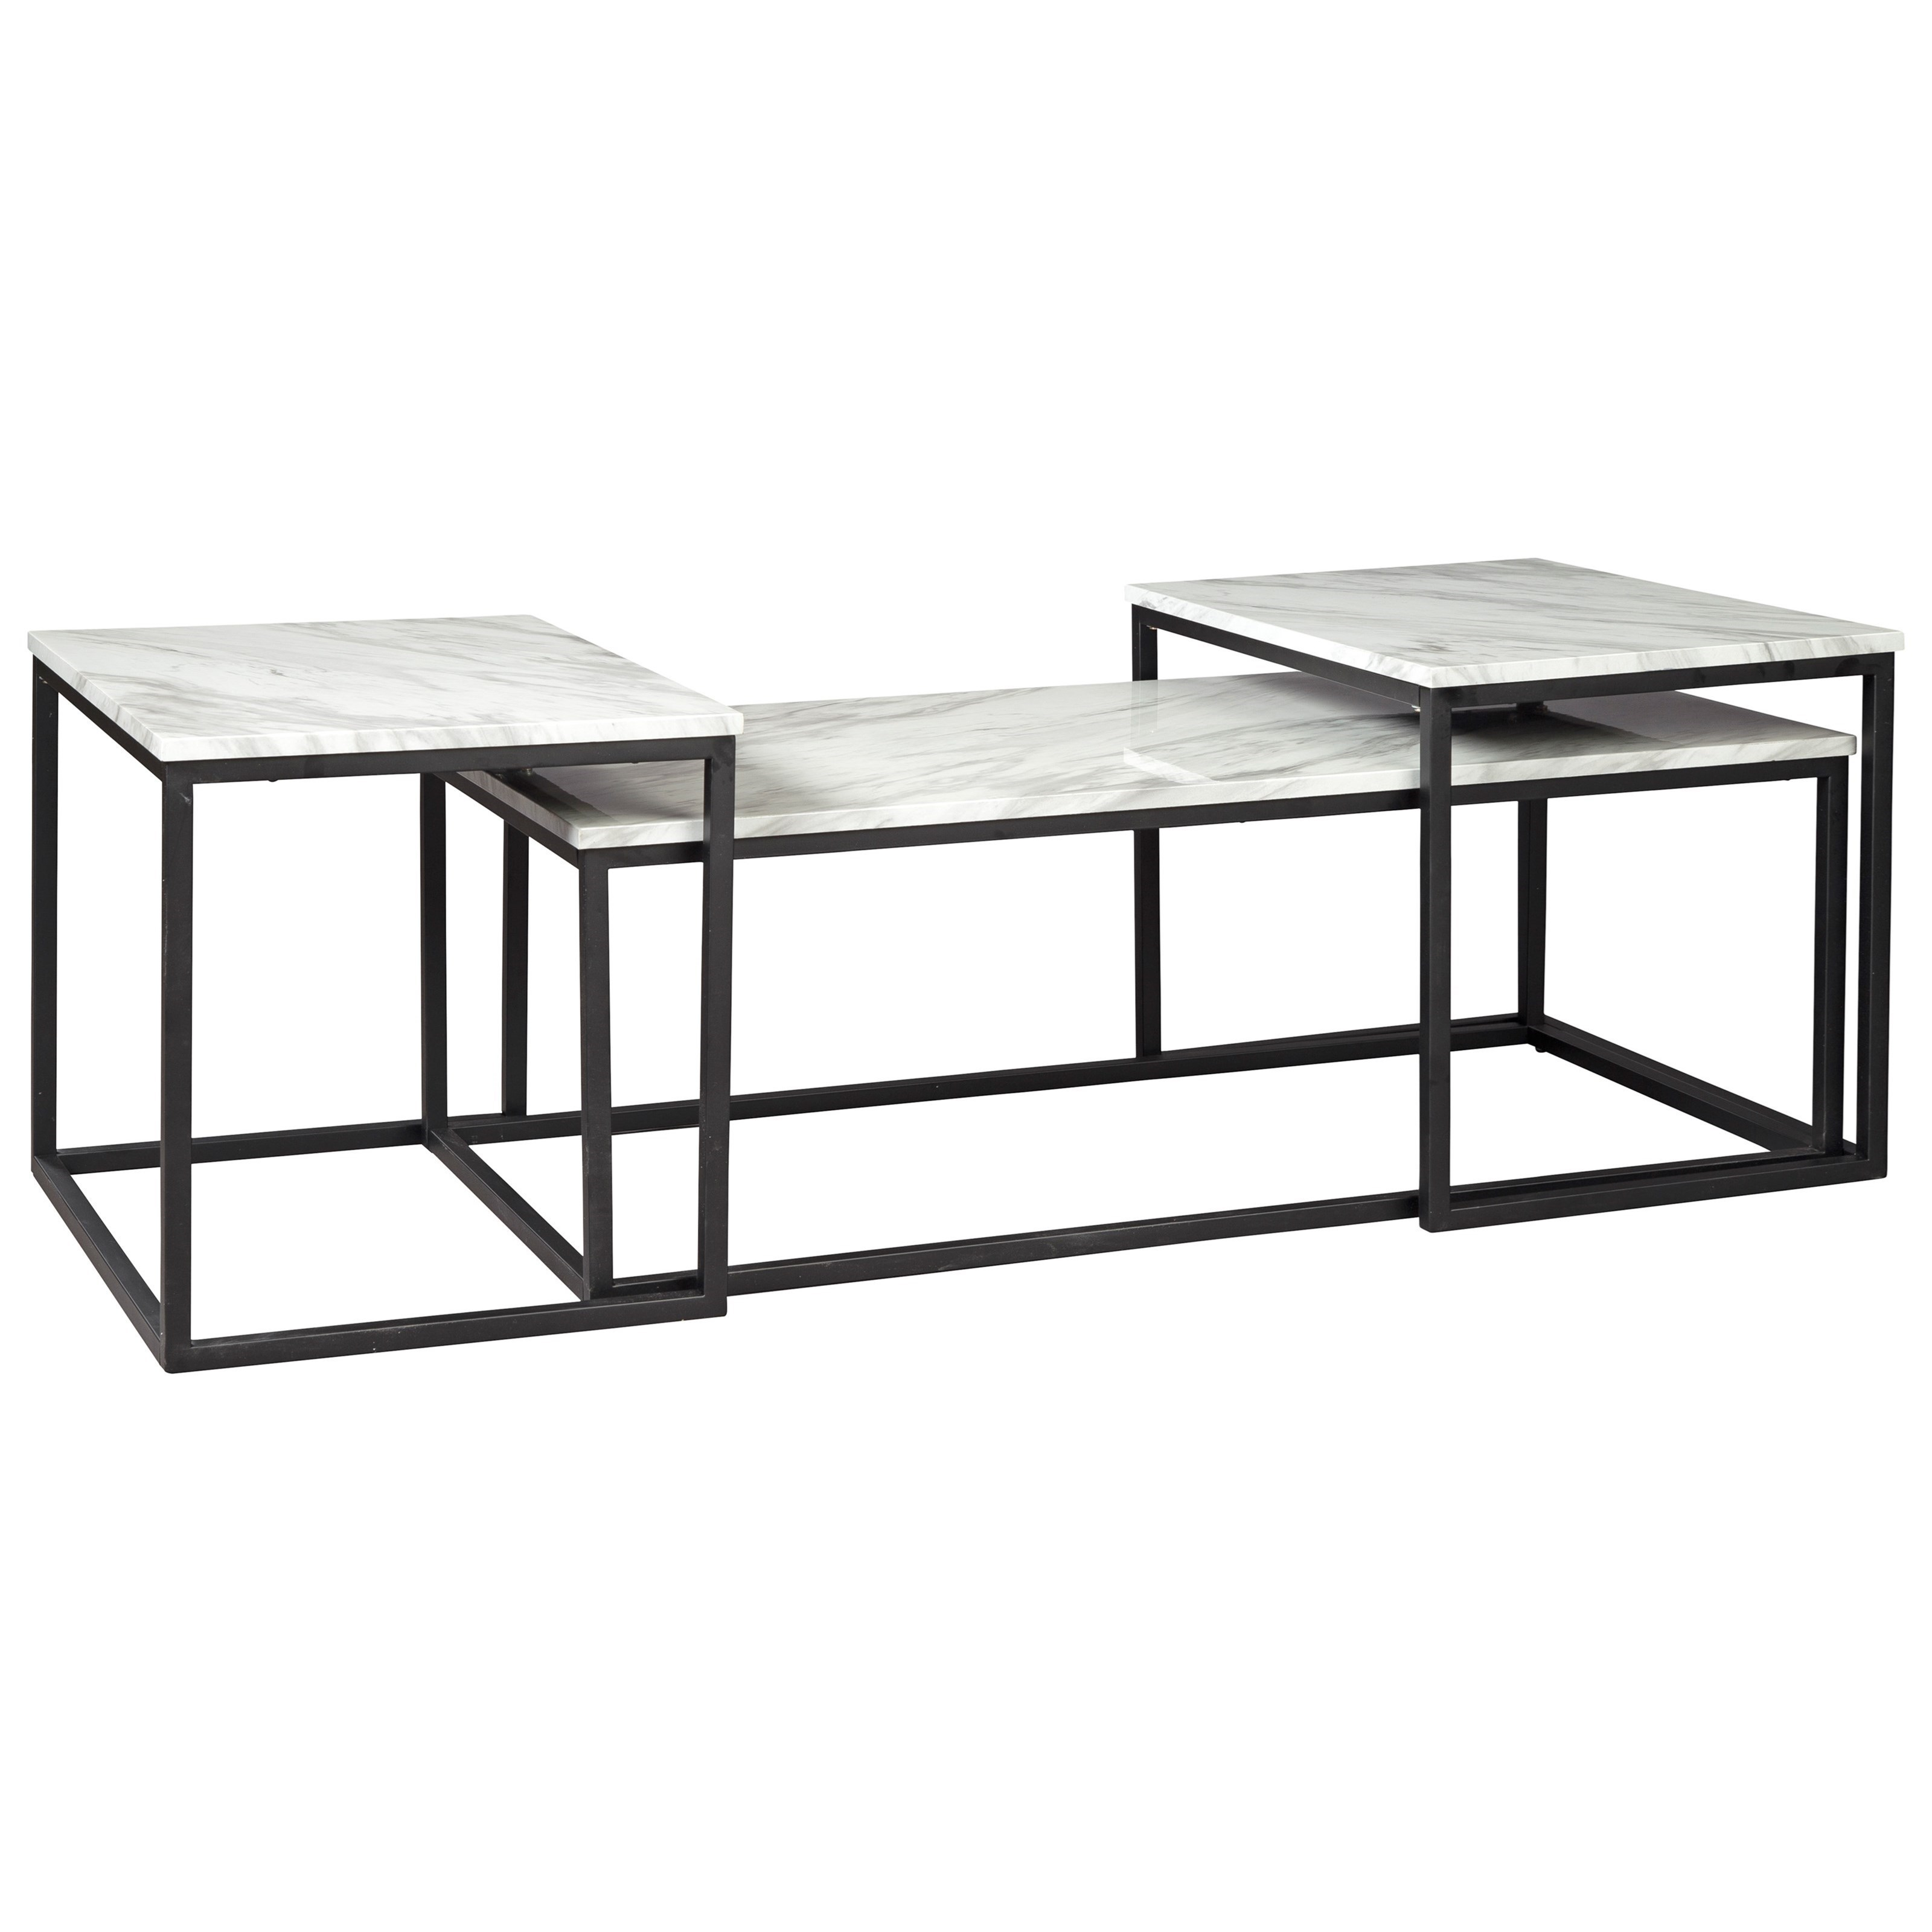 3-Piece Nesting Occasional Table Set with White Faux Marble Tops